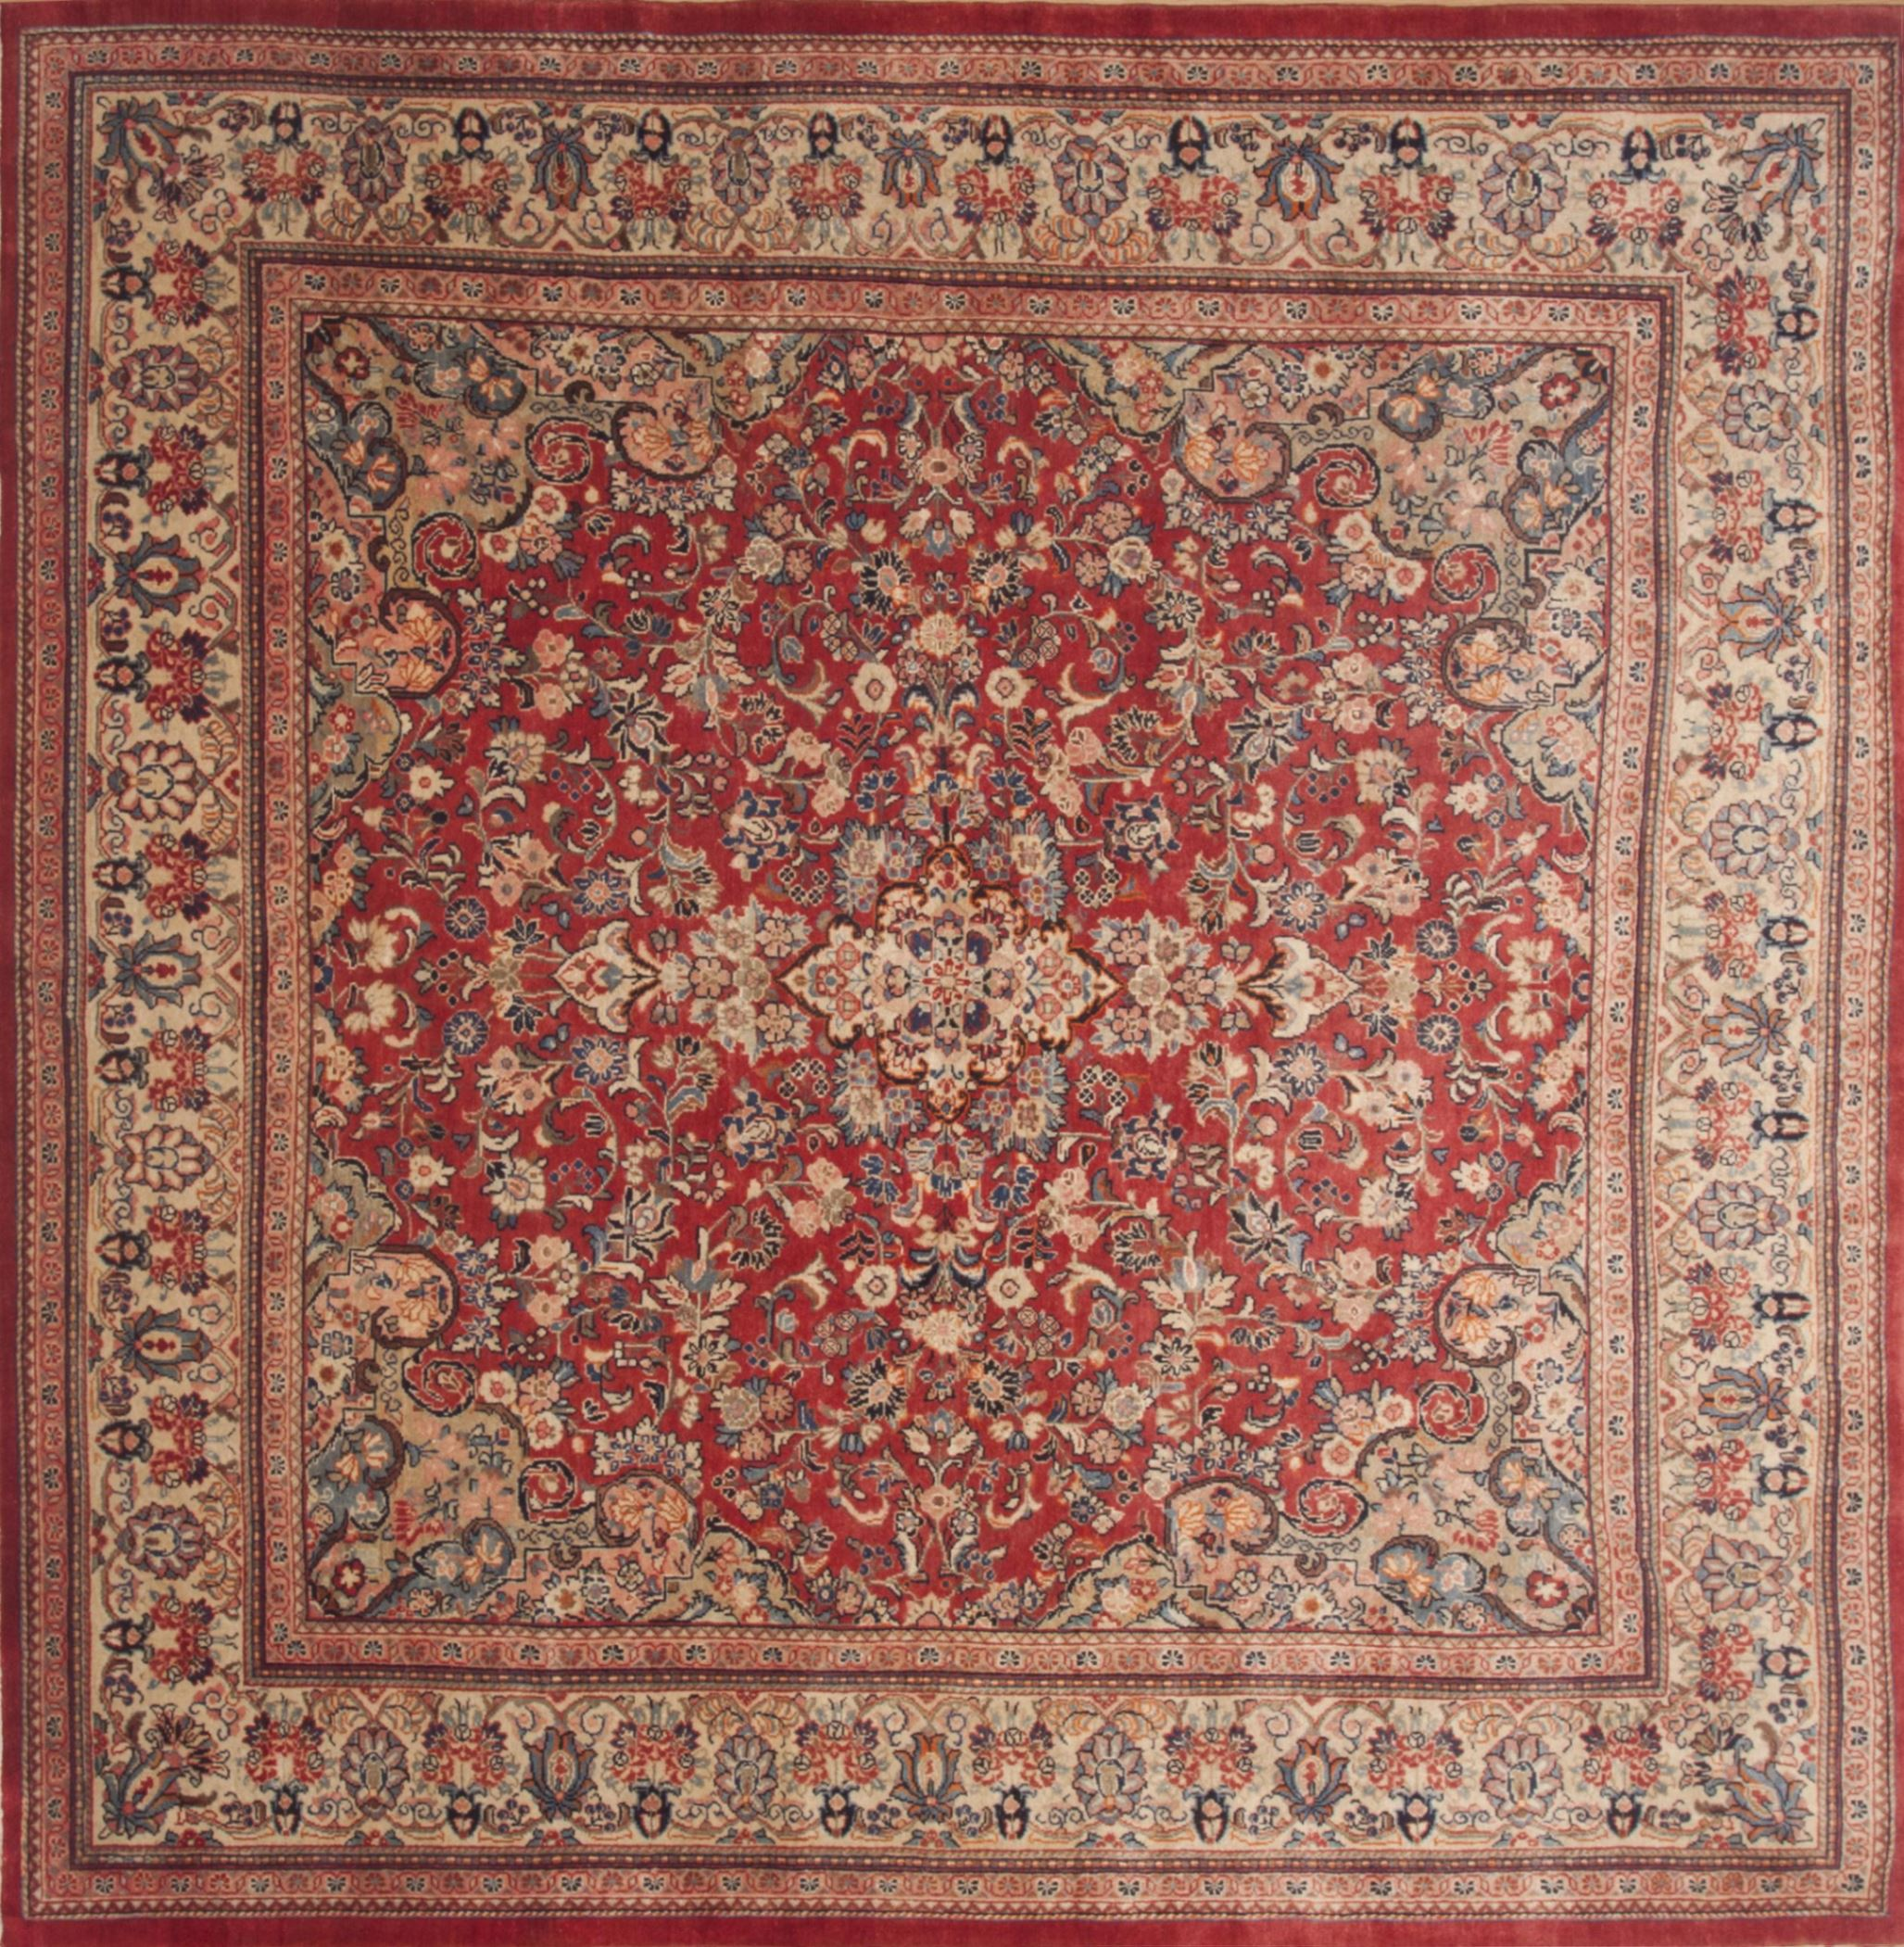 persian moshk abad red square  ft and larger wool carpet  -